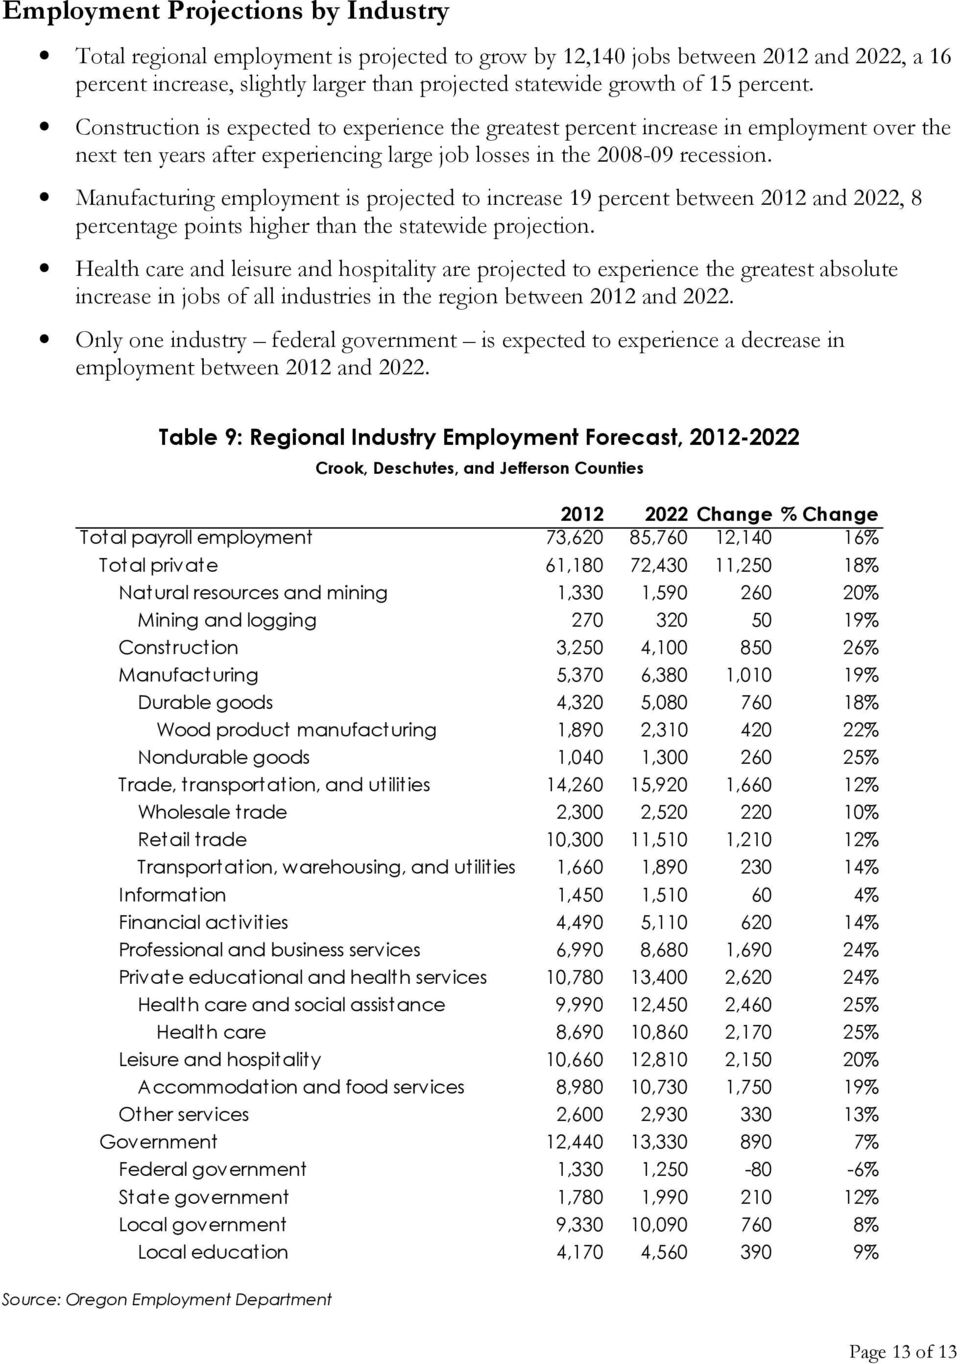 Manufacturing employment is projected to increase 19 percent between 2012 and 2022, 8 percentage points higher than the statewide projection.